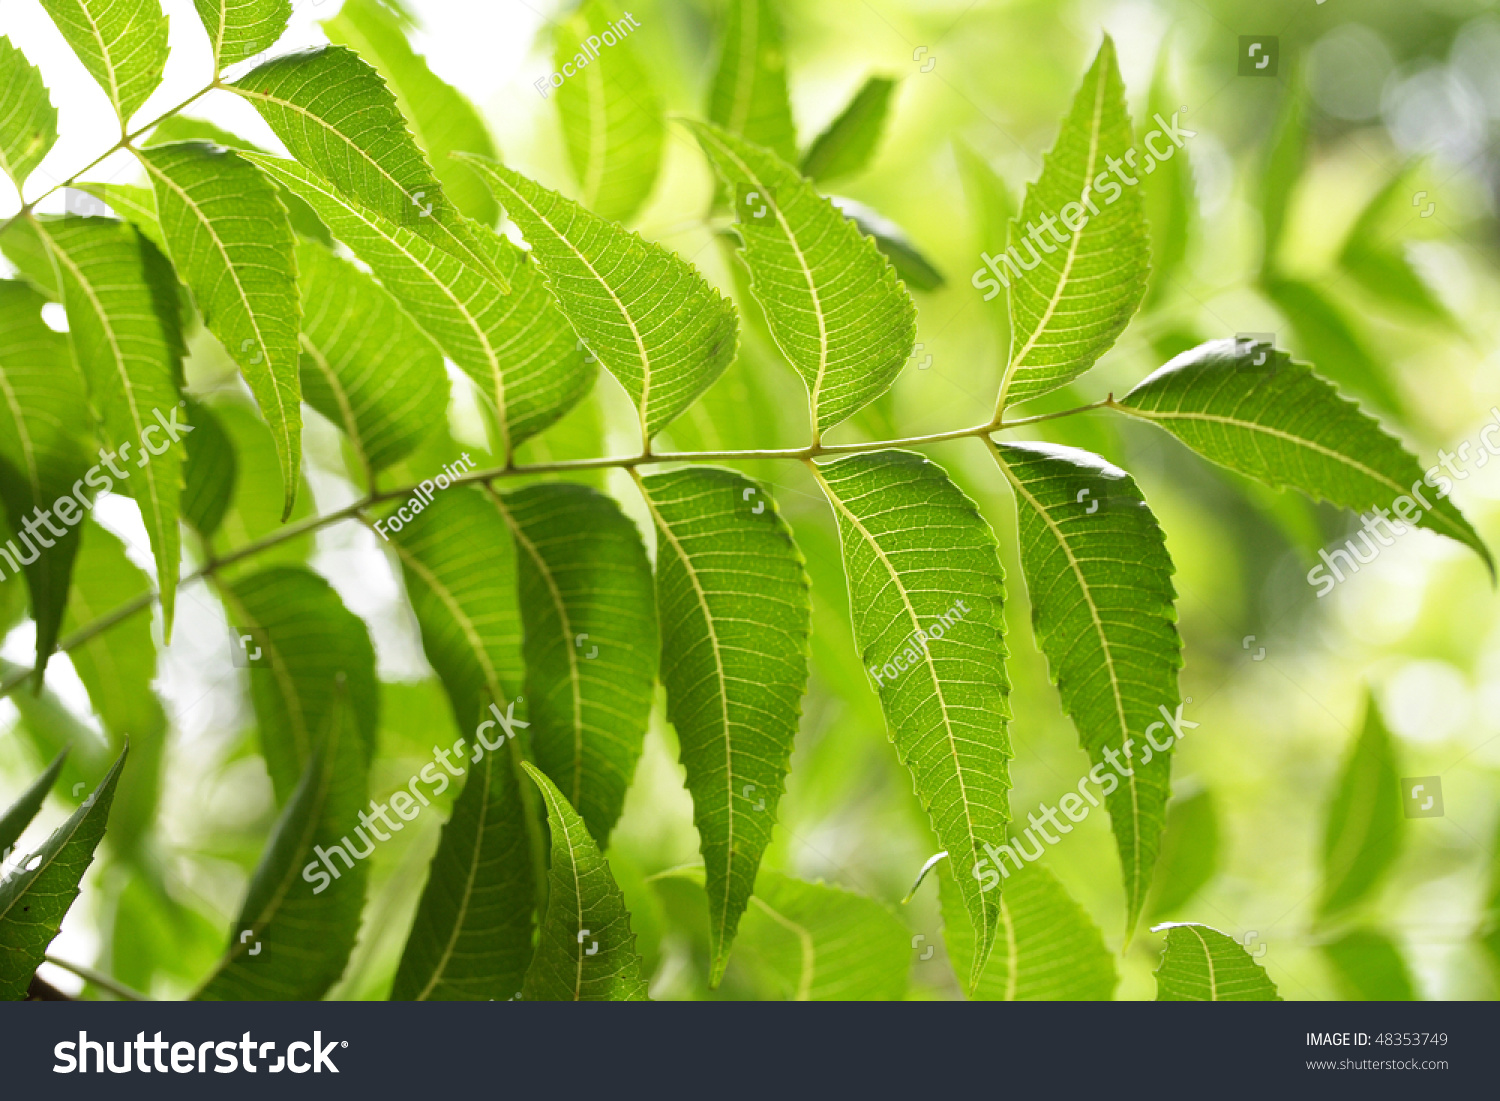 neem leaves azadirachta indica stock photo 48353749 shutterstock. Black Bedroom Furniture Sets. Home Design Ideas